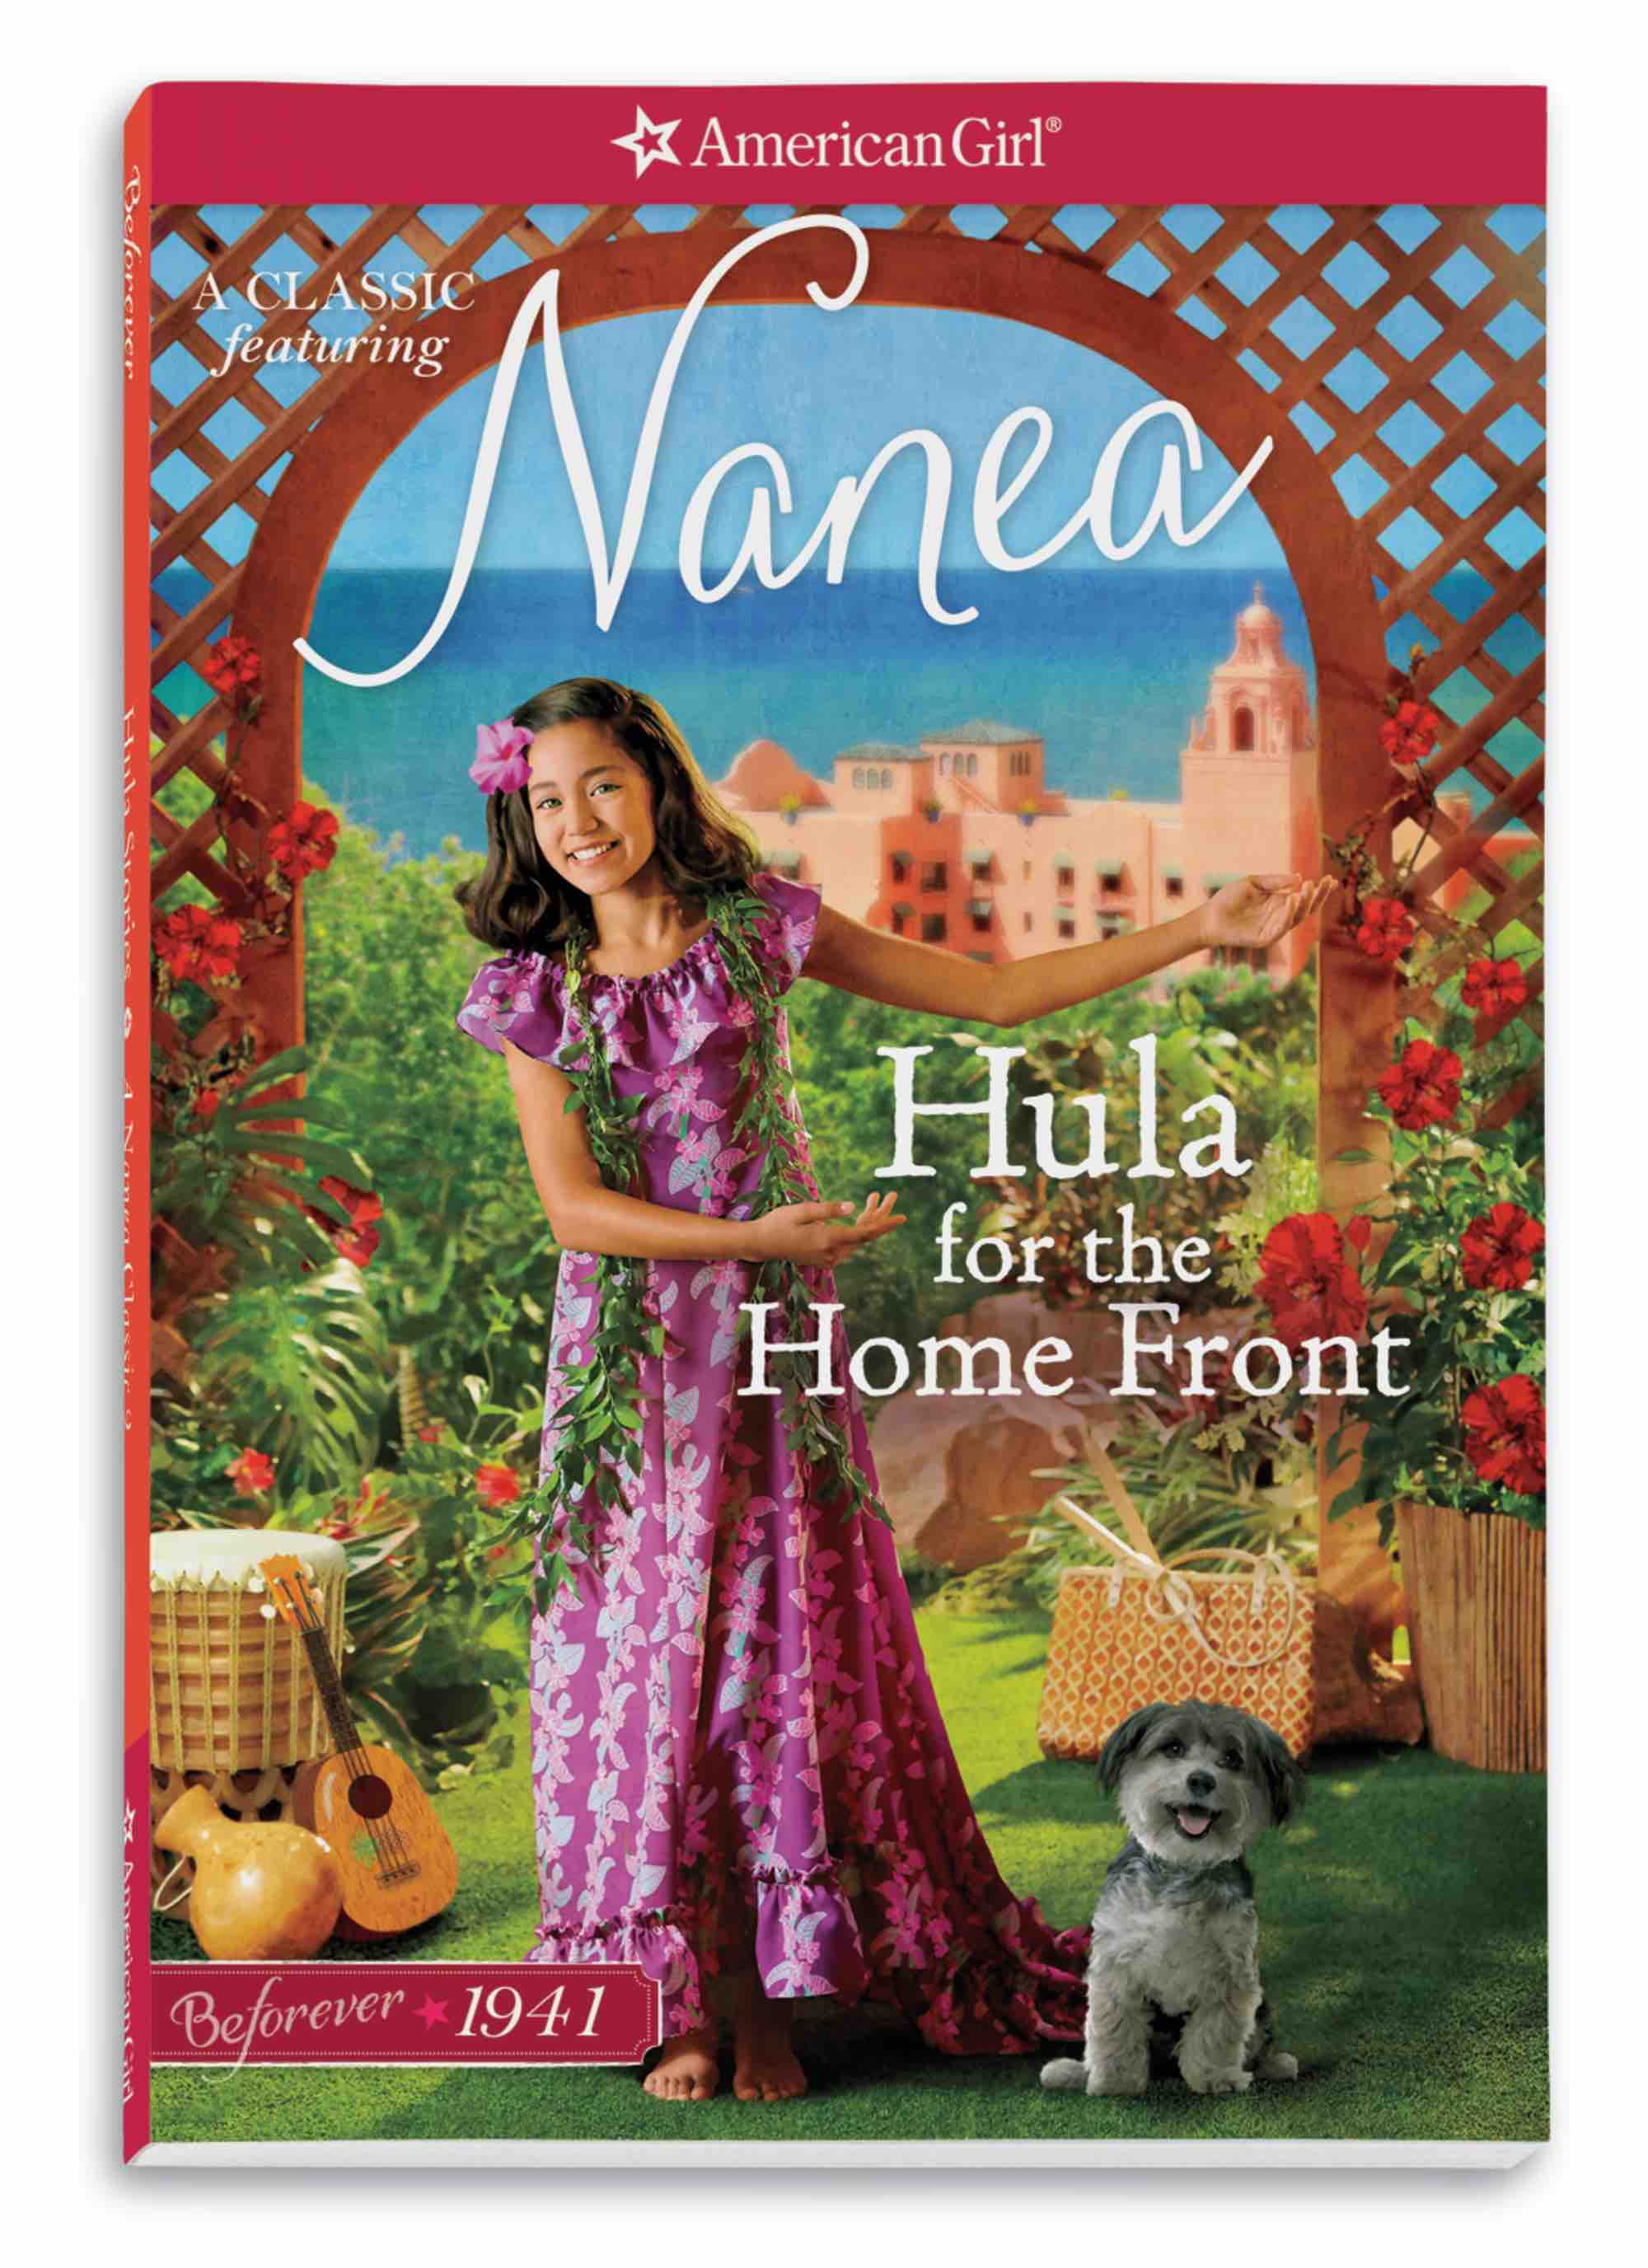 American Girl Nanea Mitchell Hula on the Home Front